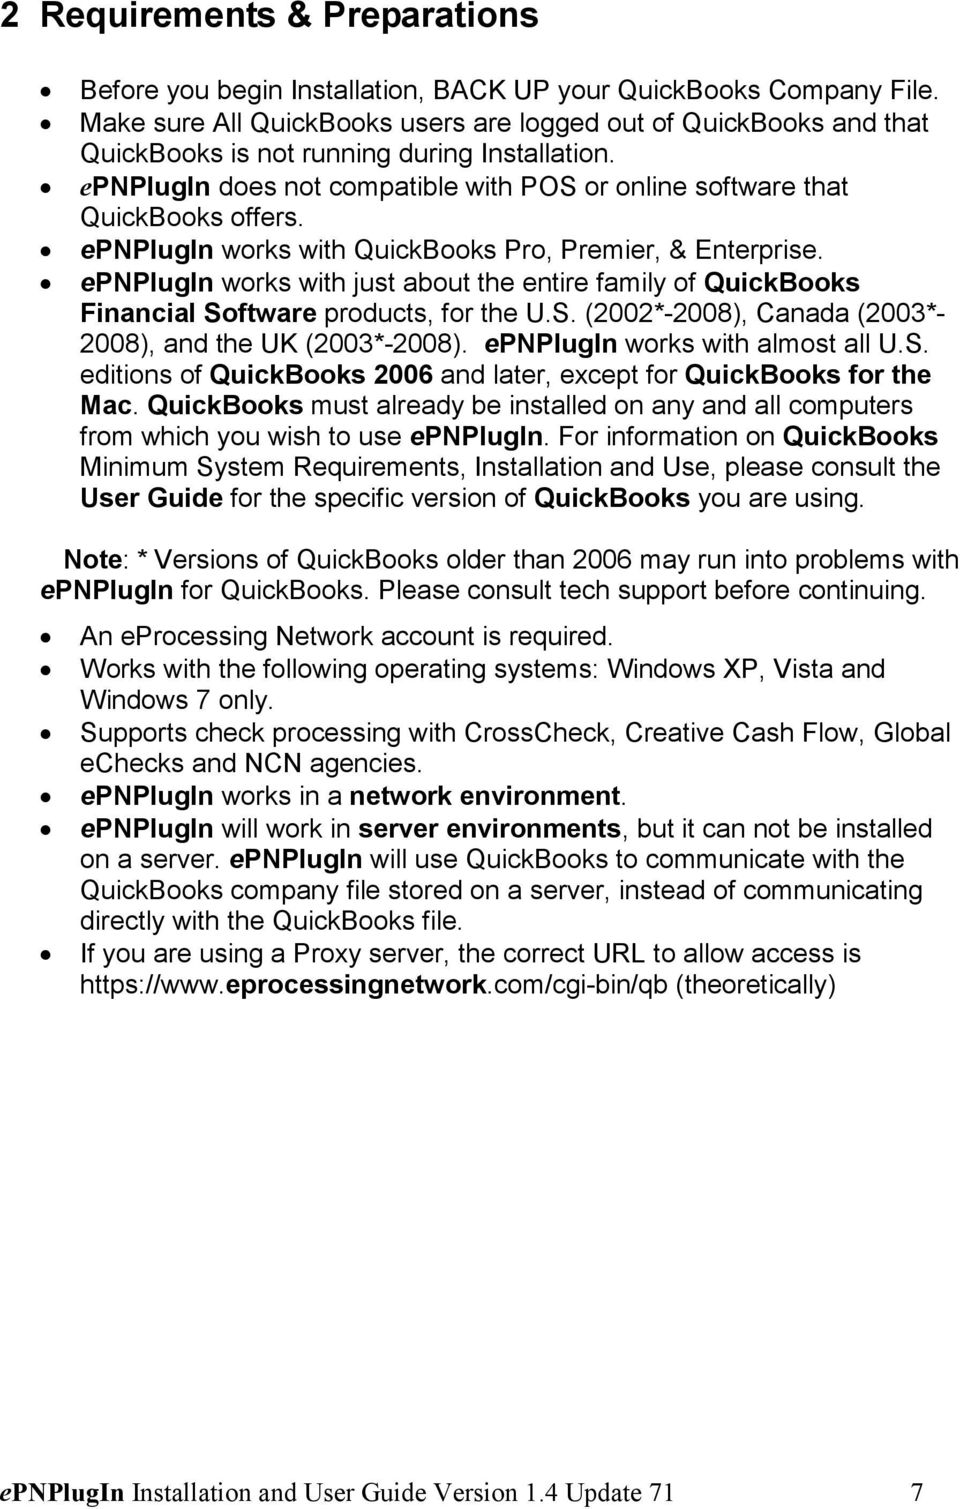 epnplugin works with QuickBooks Pro, Premier, & Enterprise. epnplugin works with just about the entire family of QuickBooks Financial Software products, for the U.S. (2002*-2008), Canada (2003*- 2008), and the UK (2003*-2008).